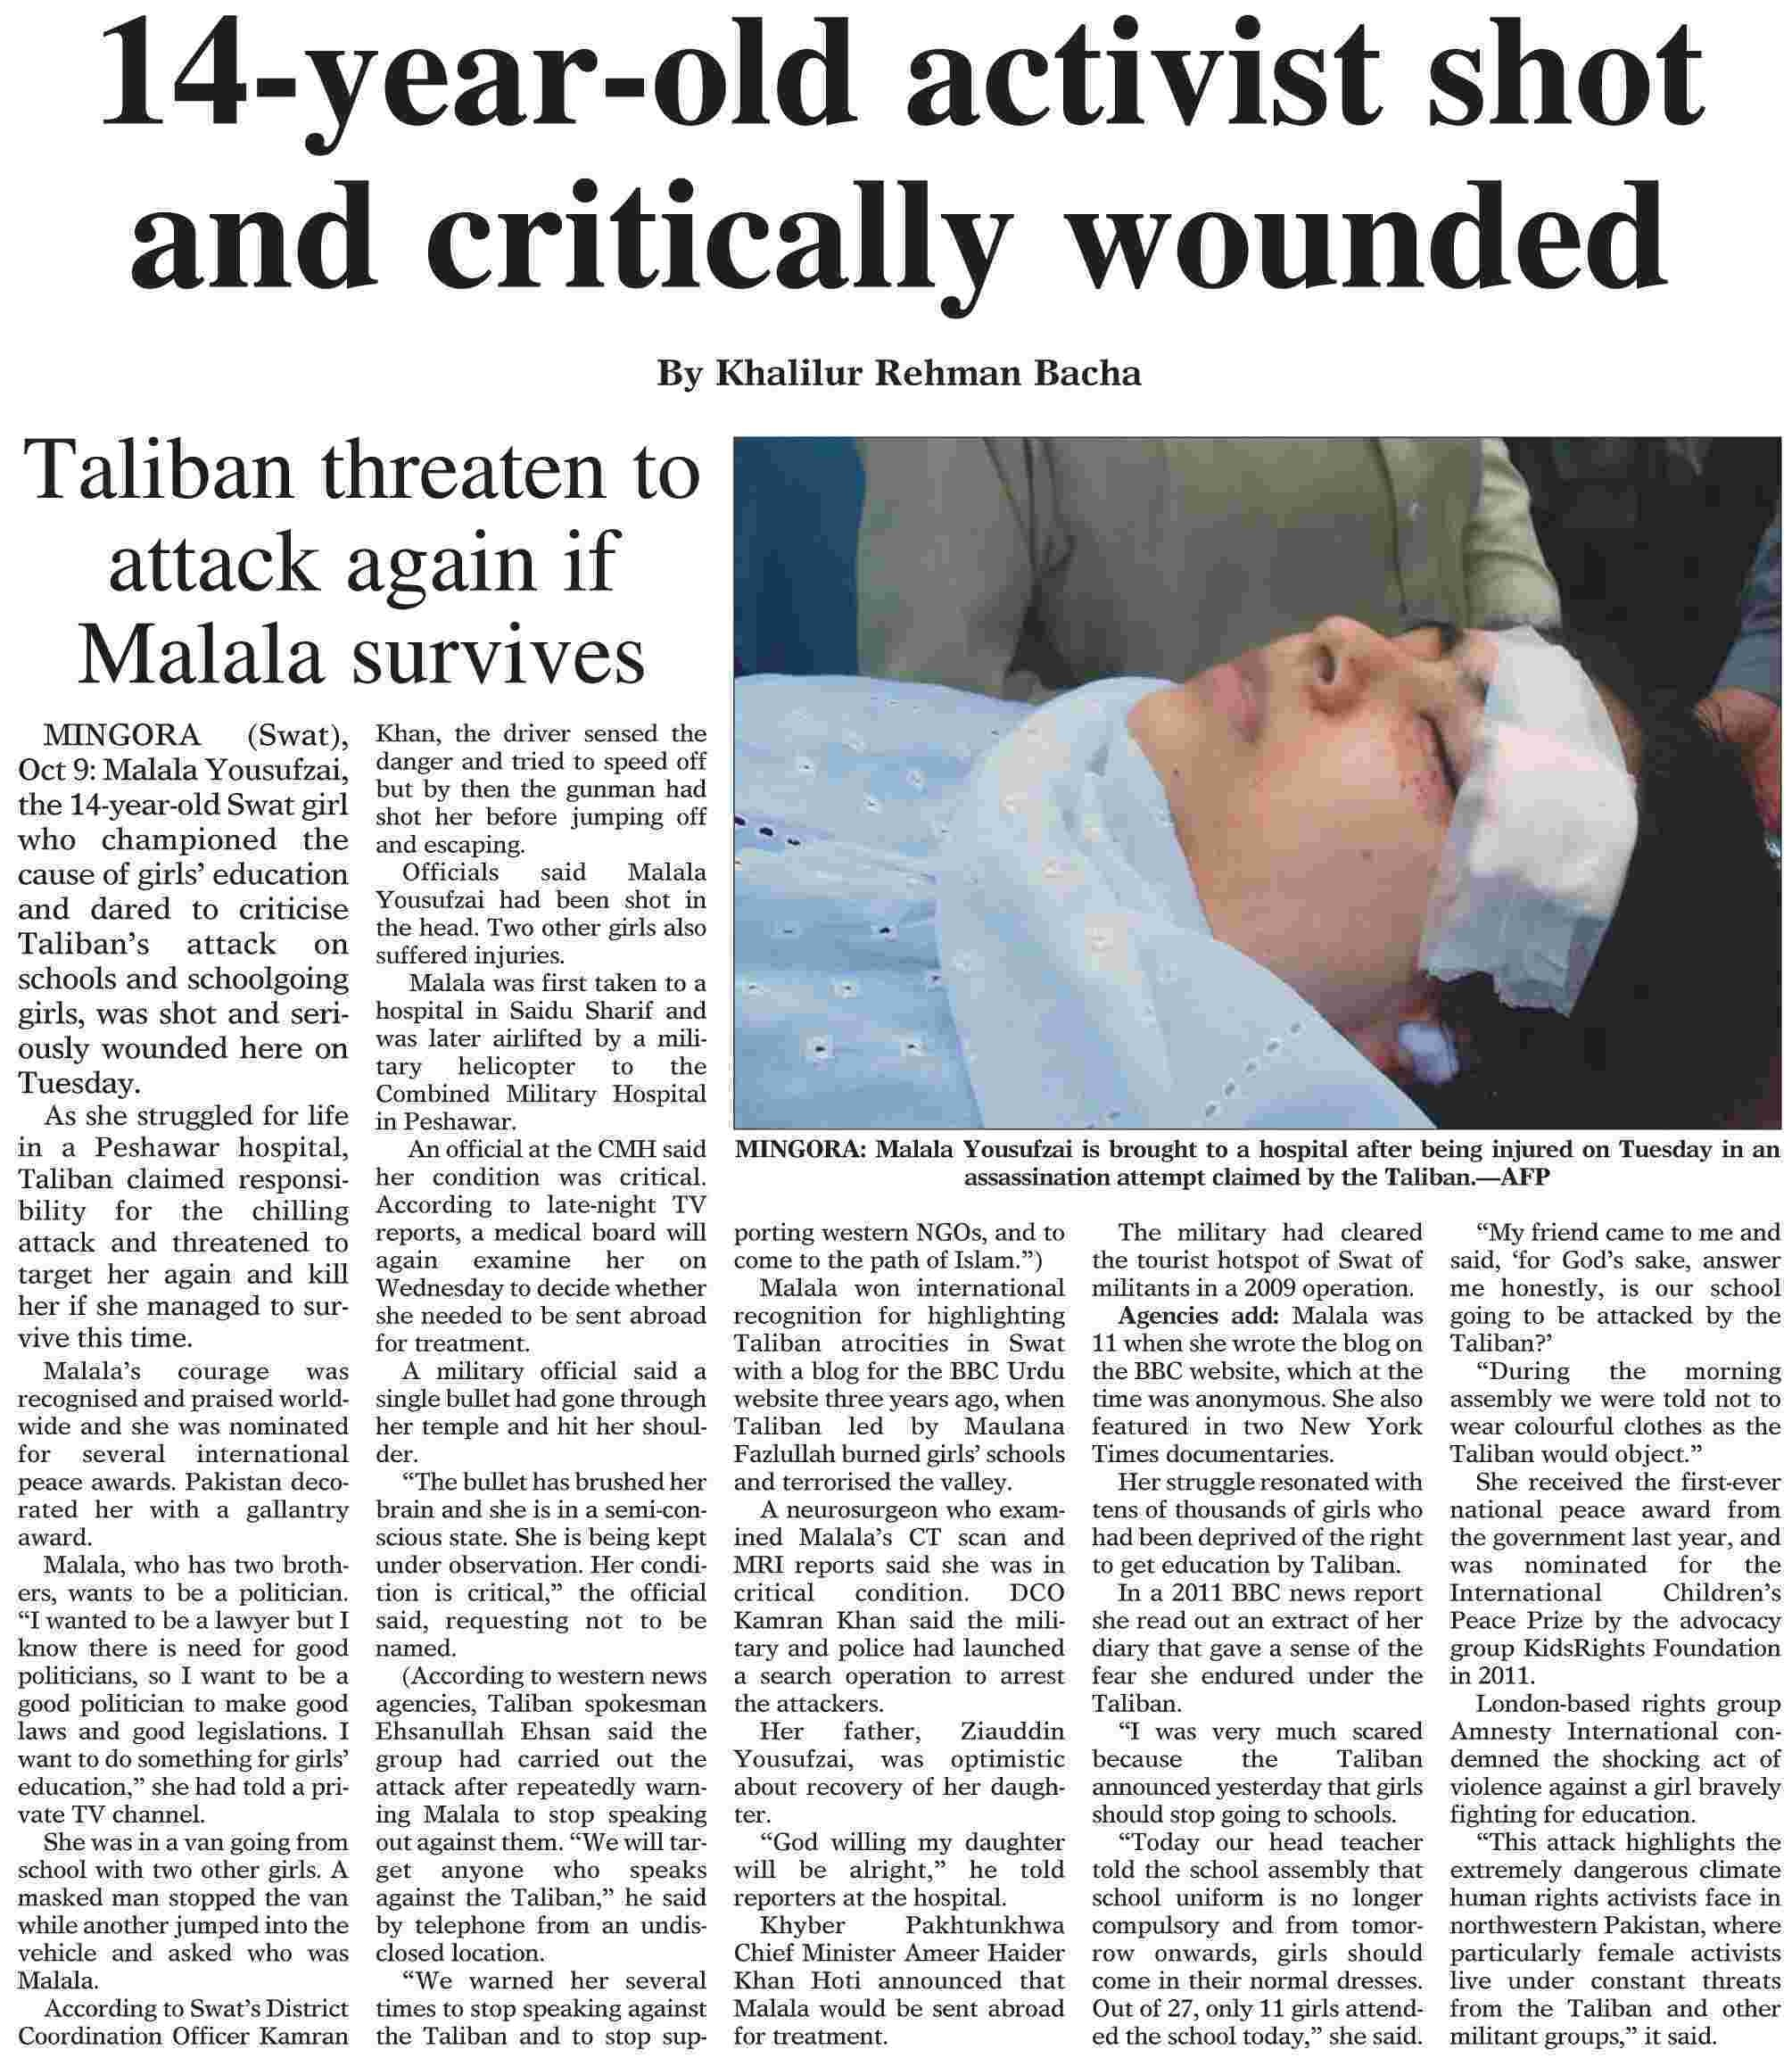 A Dawn newspaper clipping from Oct 10, 2012.